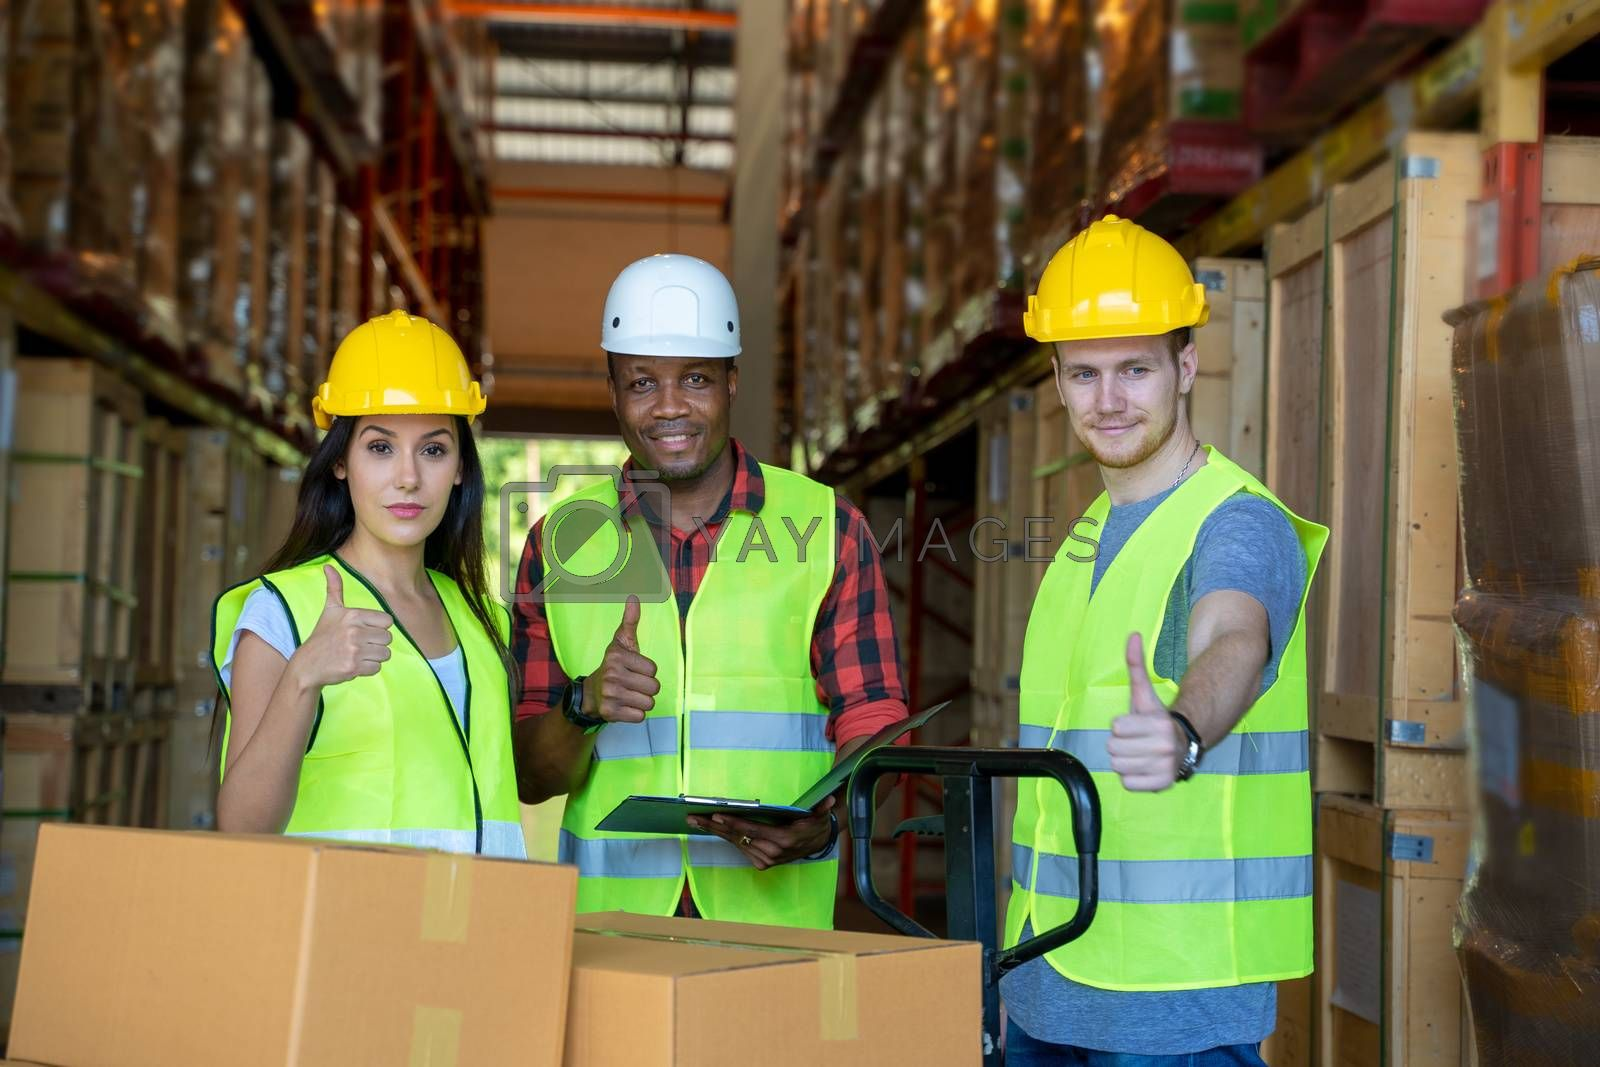 Warehouse team discussing and working with clipboards in warehouse.